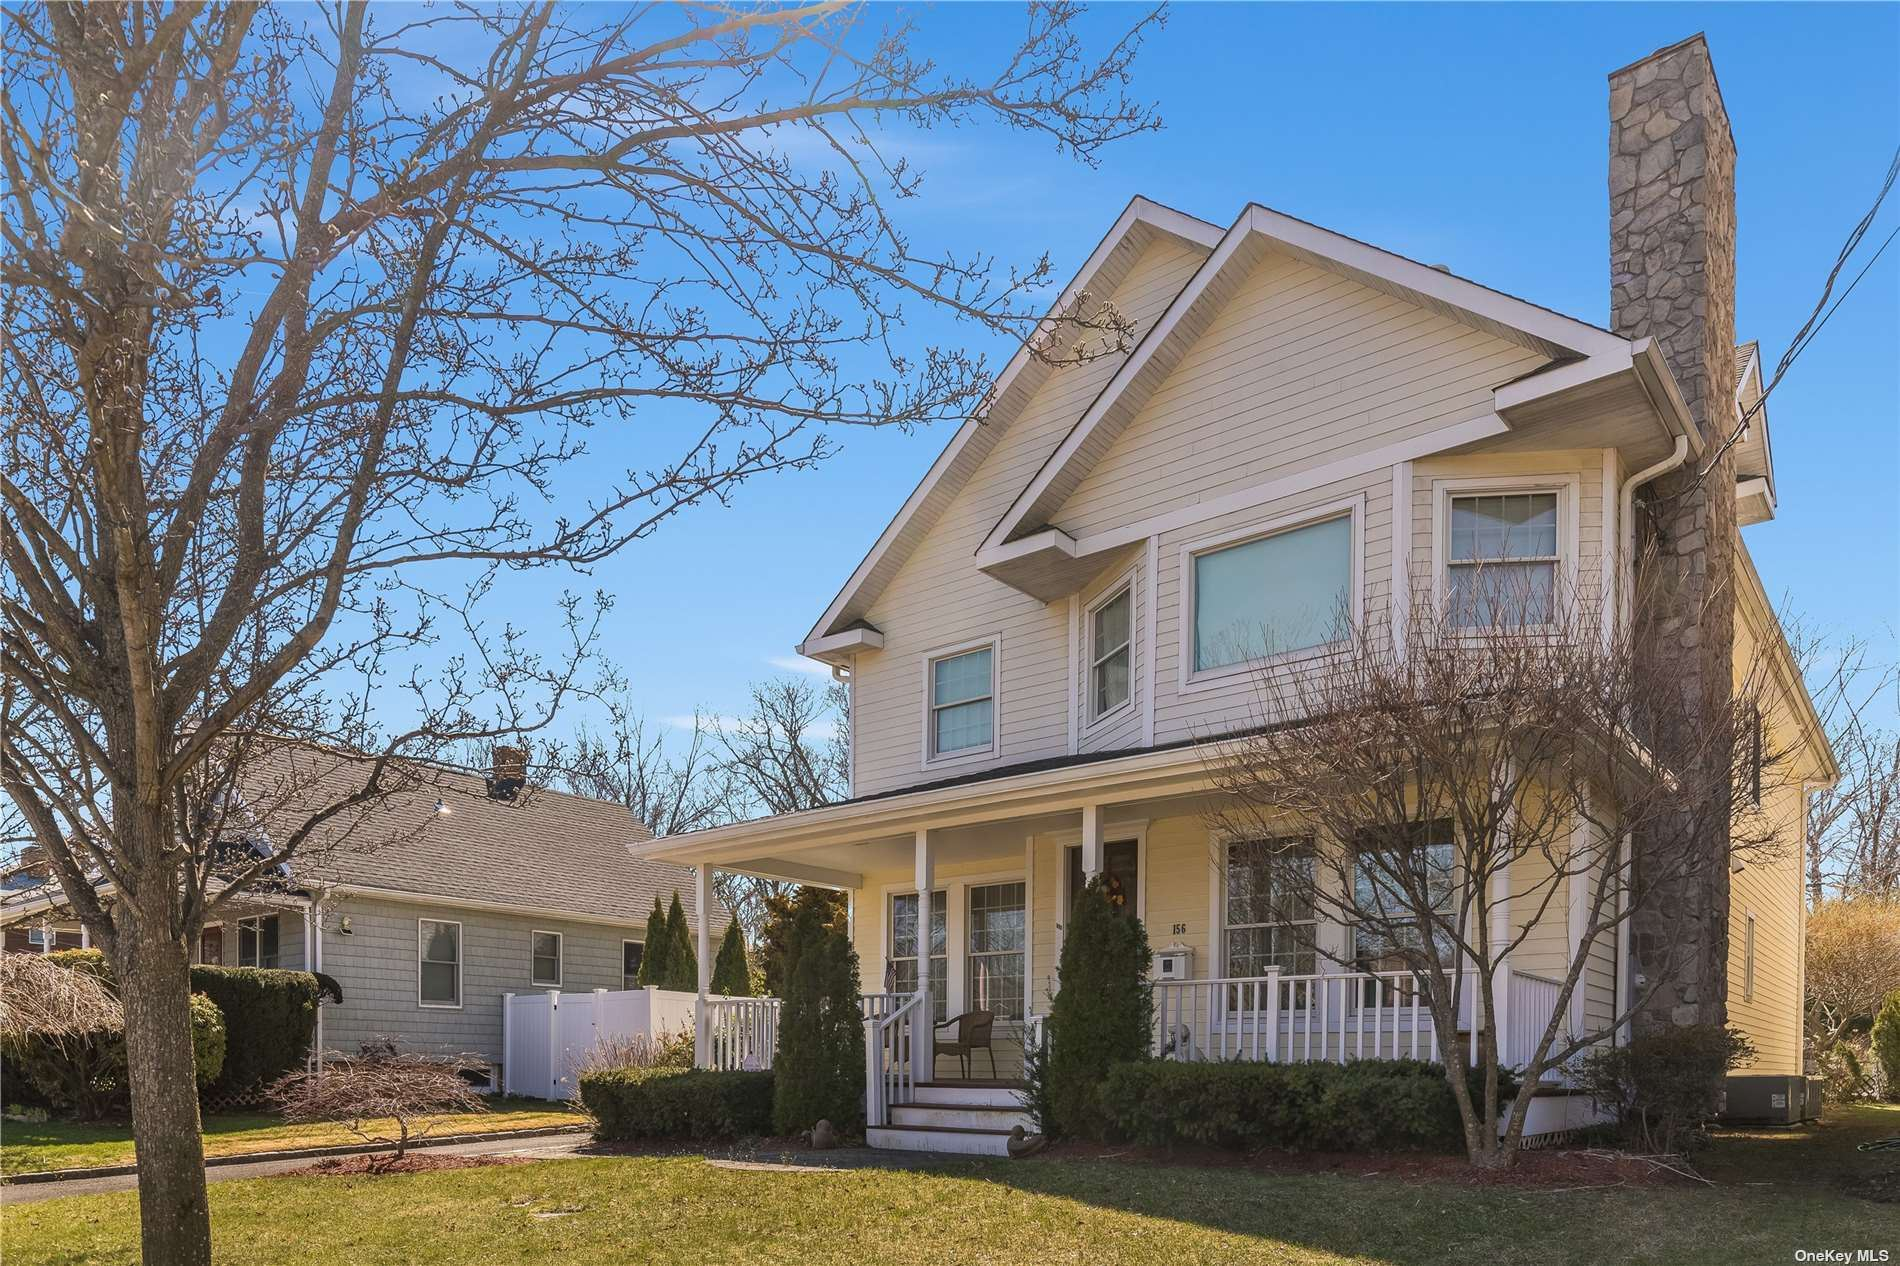 Photo of 156 Summers Street, Oyster Bay, NY 11771 (MLS # 3300891)